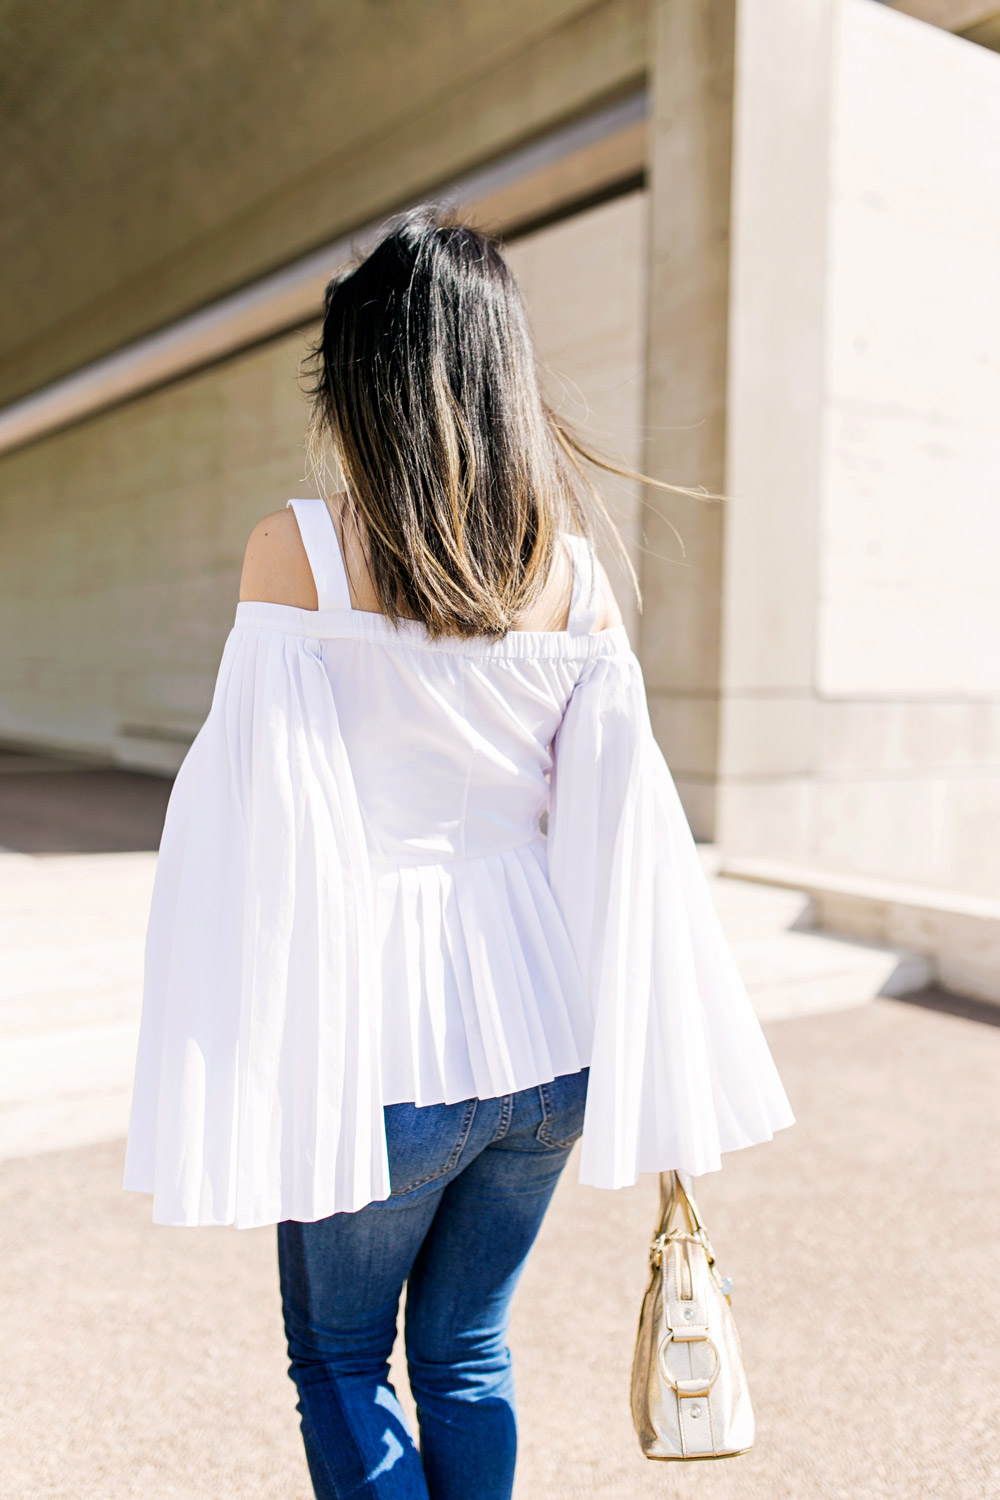 charles youssef pleated off the shoulder top with lele sadoughi windchime earrings and whbm tuxedo jeans